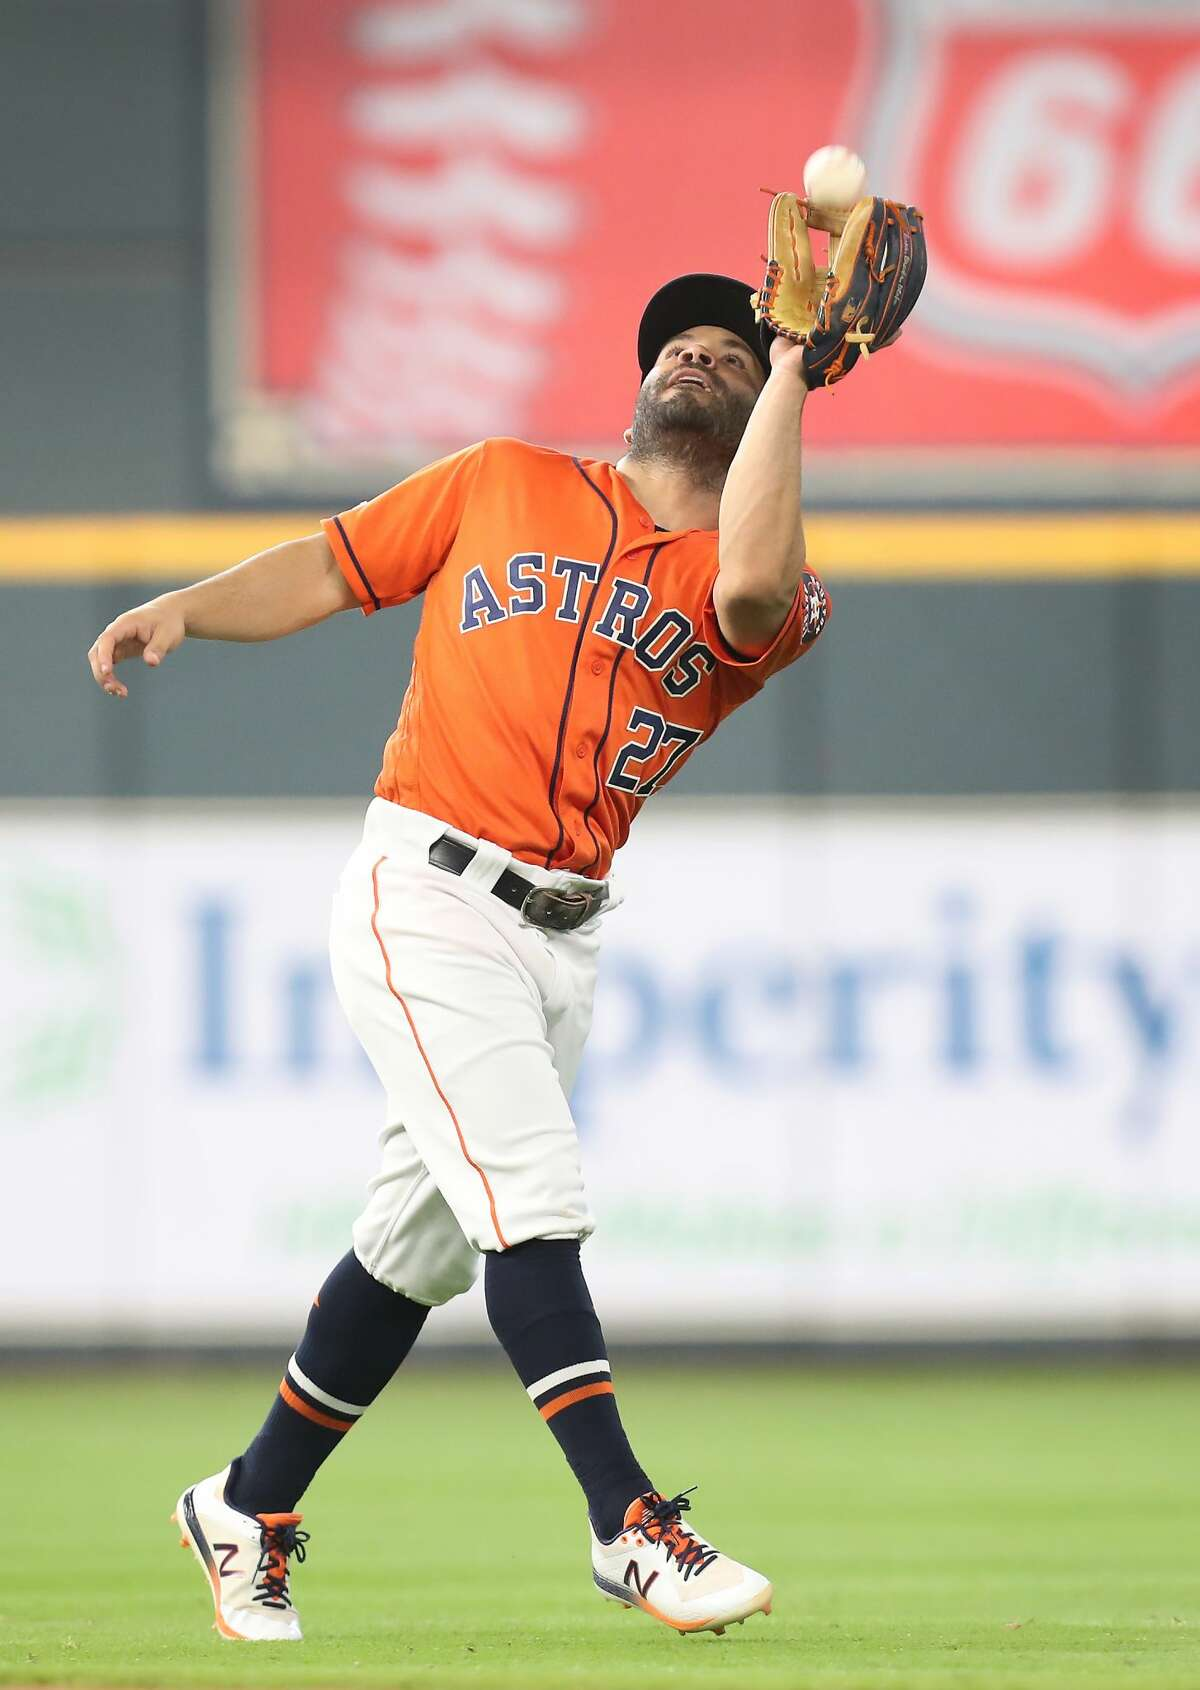 Houston Astros second baseman Jose Altuve (27) catches a pop up by Texas Rangers shortstop Elvis Andrus (1) during the first-inning of an MLB baseball game at Minute Maid Park Friday, May 10, 2019, in Houston.